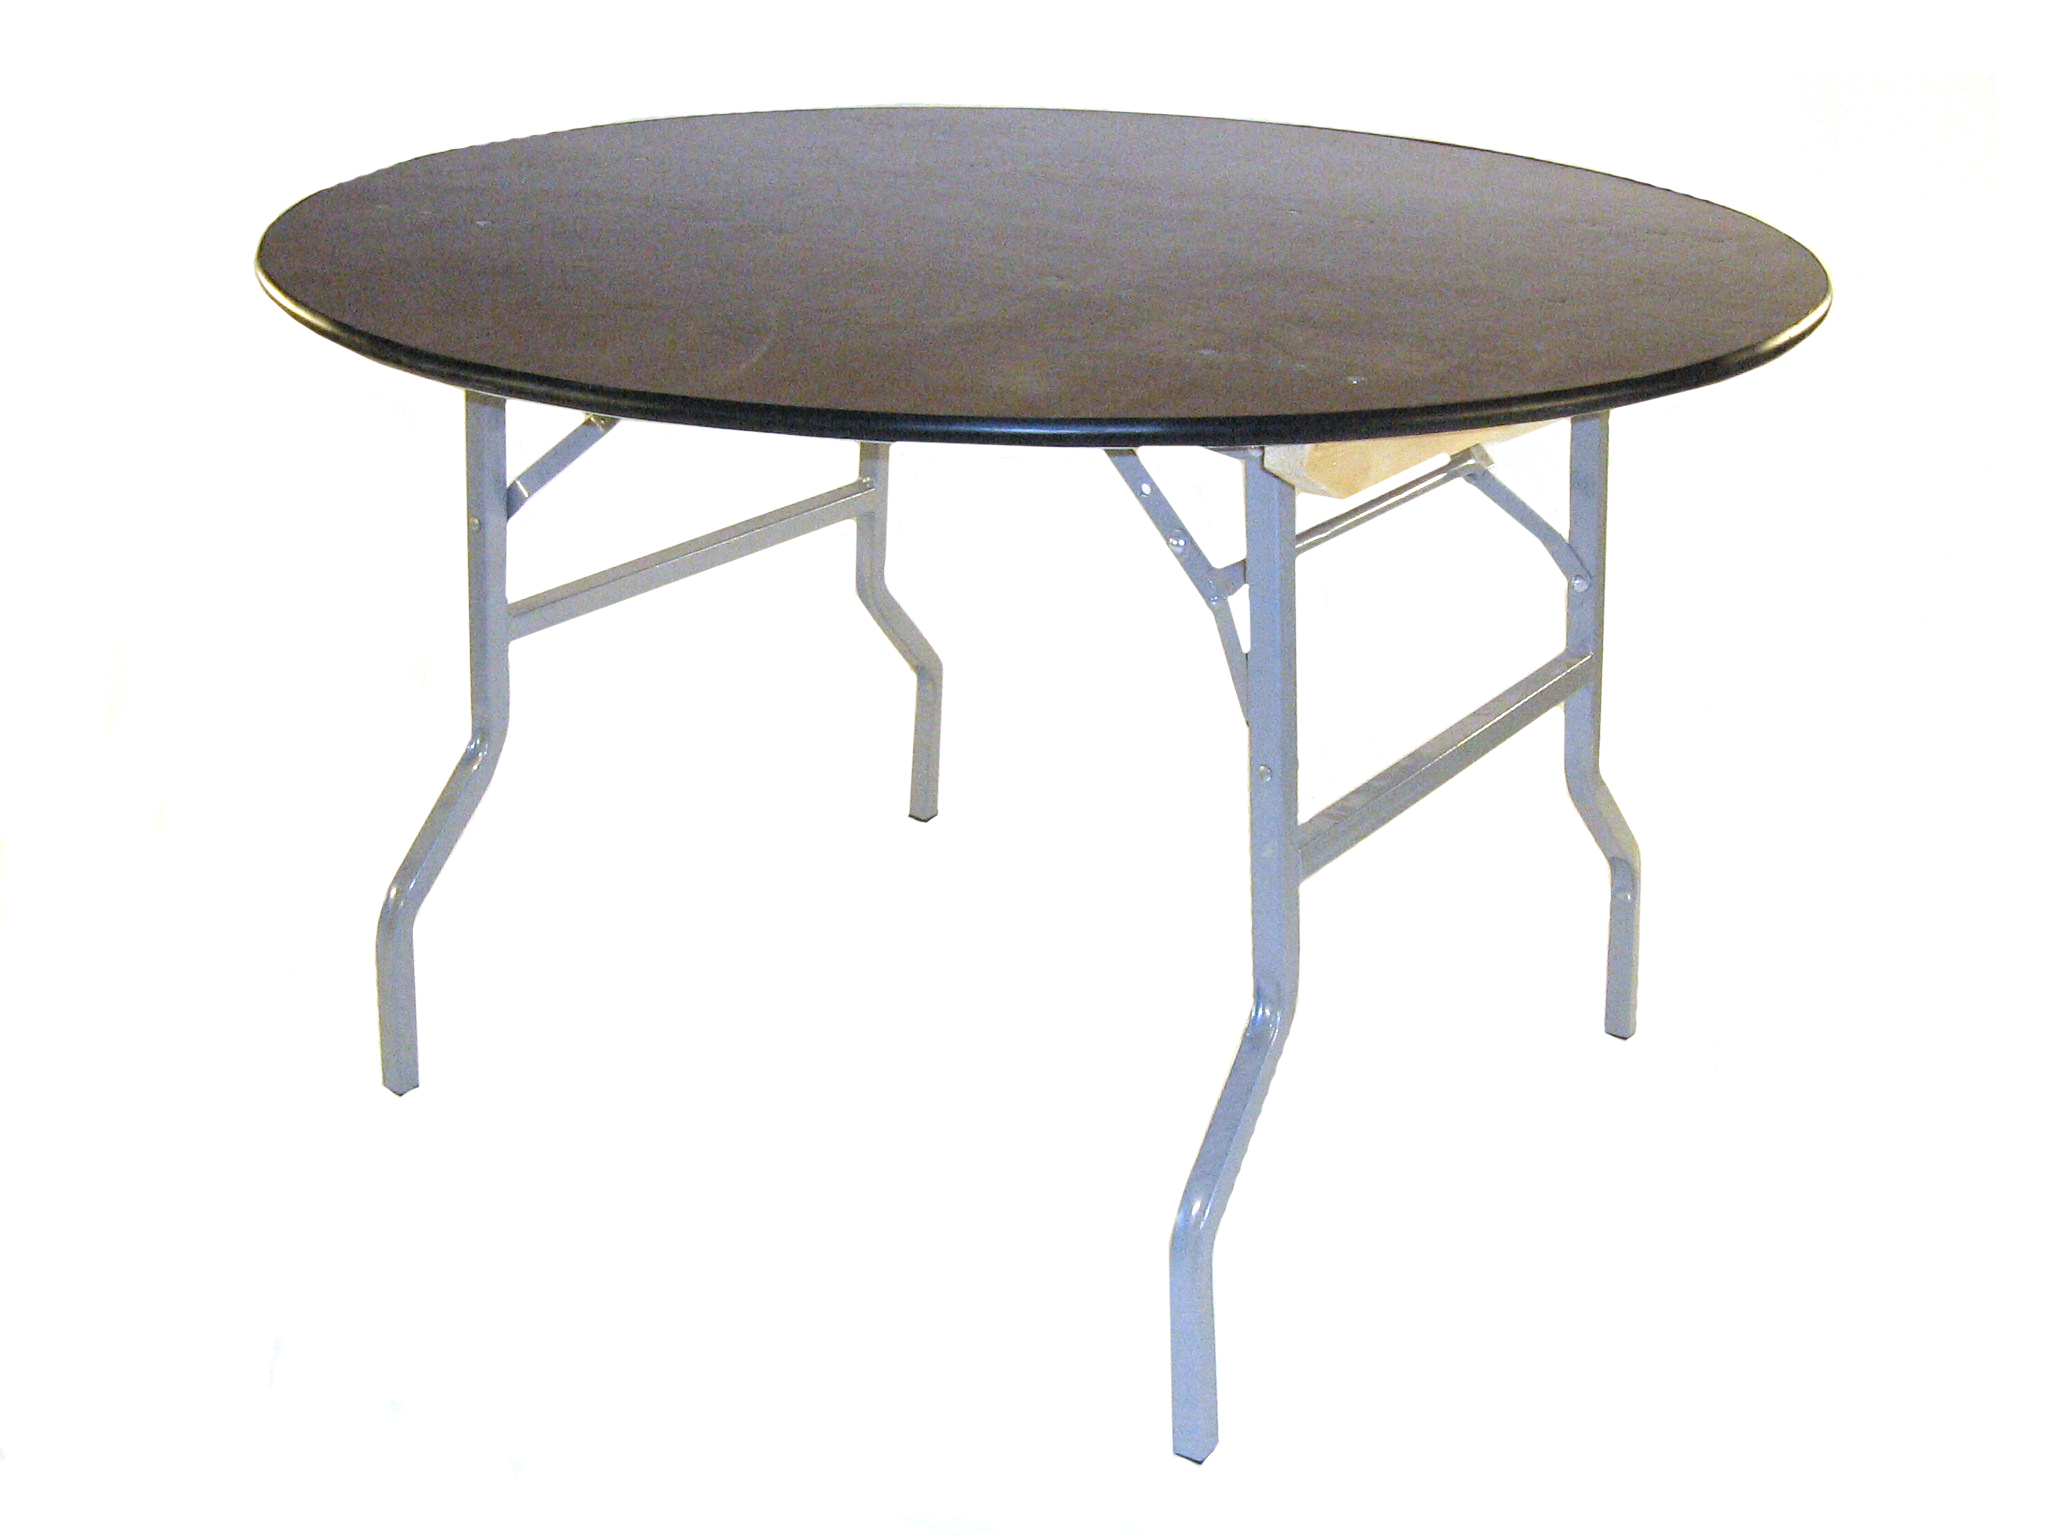 4' Diameter (122cm) varnished plywood top round tables with steel folding legs- BE Event Hire